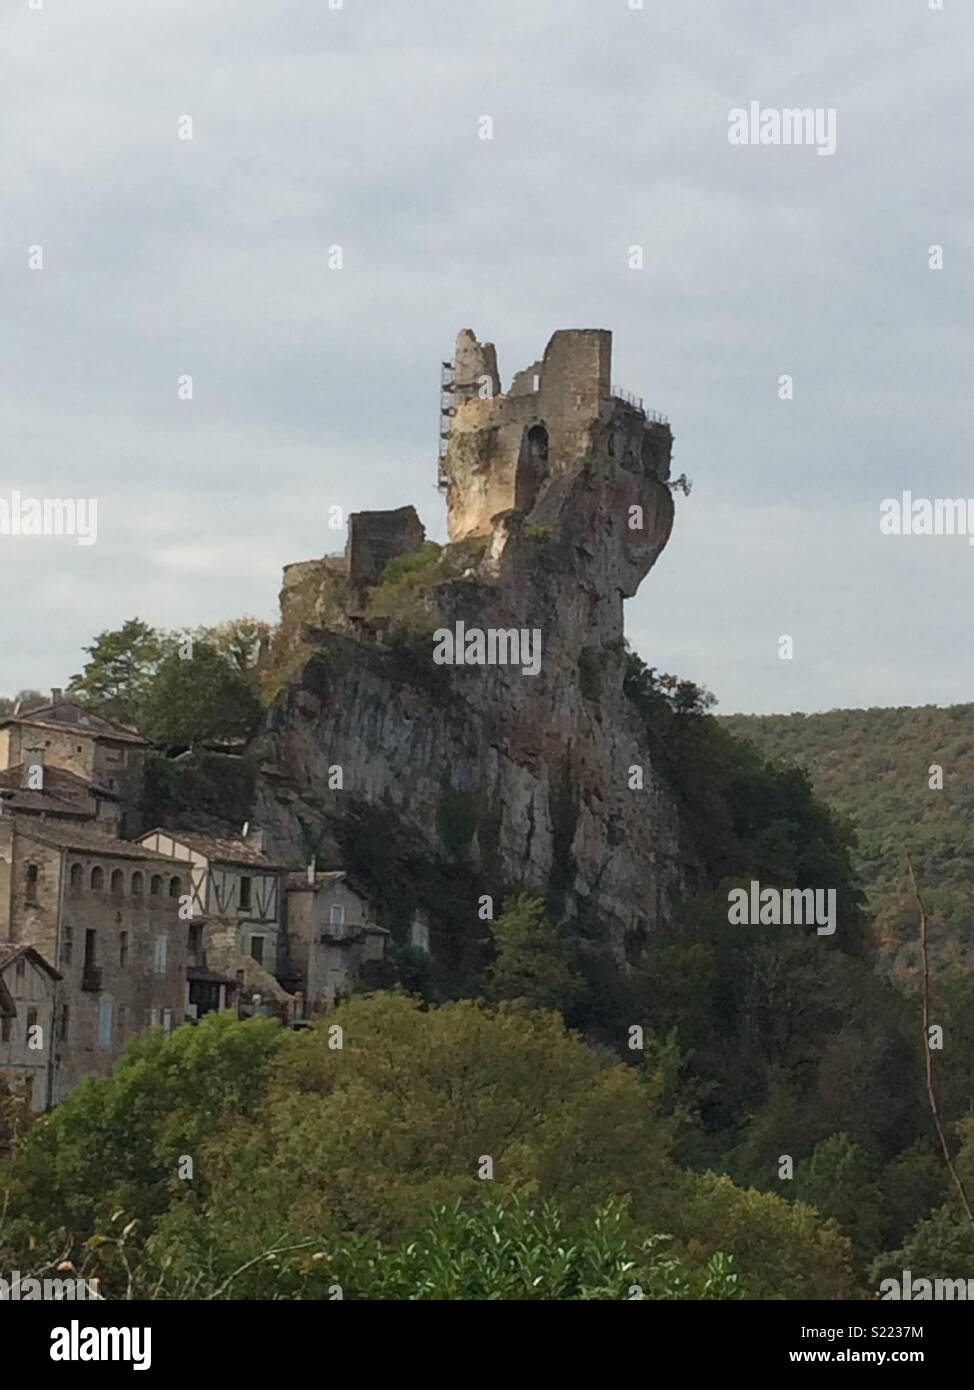 French ruined chateau in the sky - Stock Image